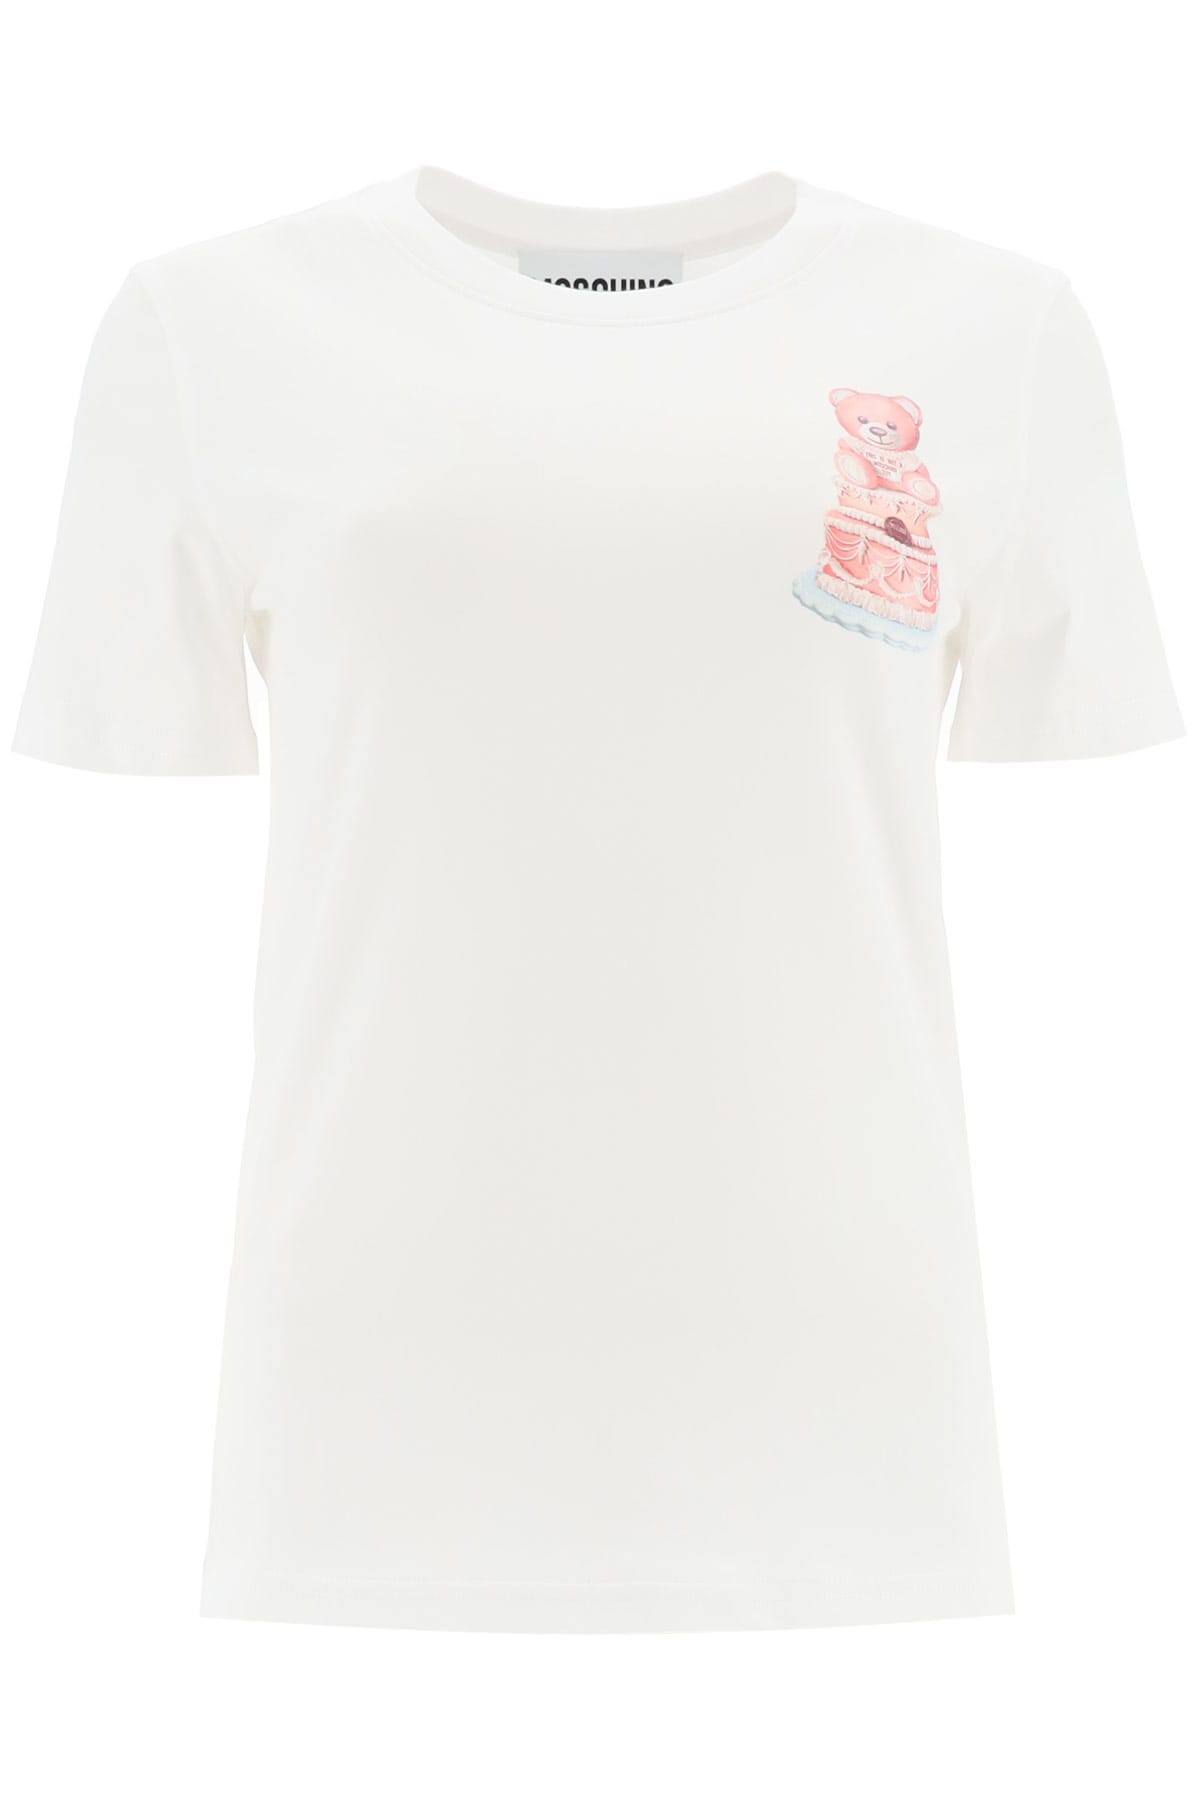 Moschino TEDDY BEAR CAKE T-SHIRT